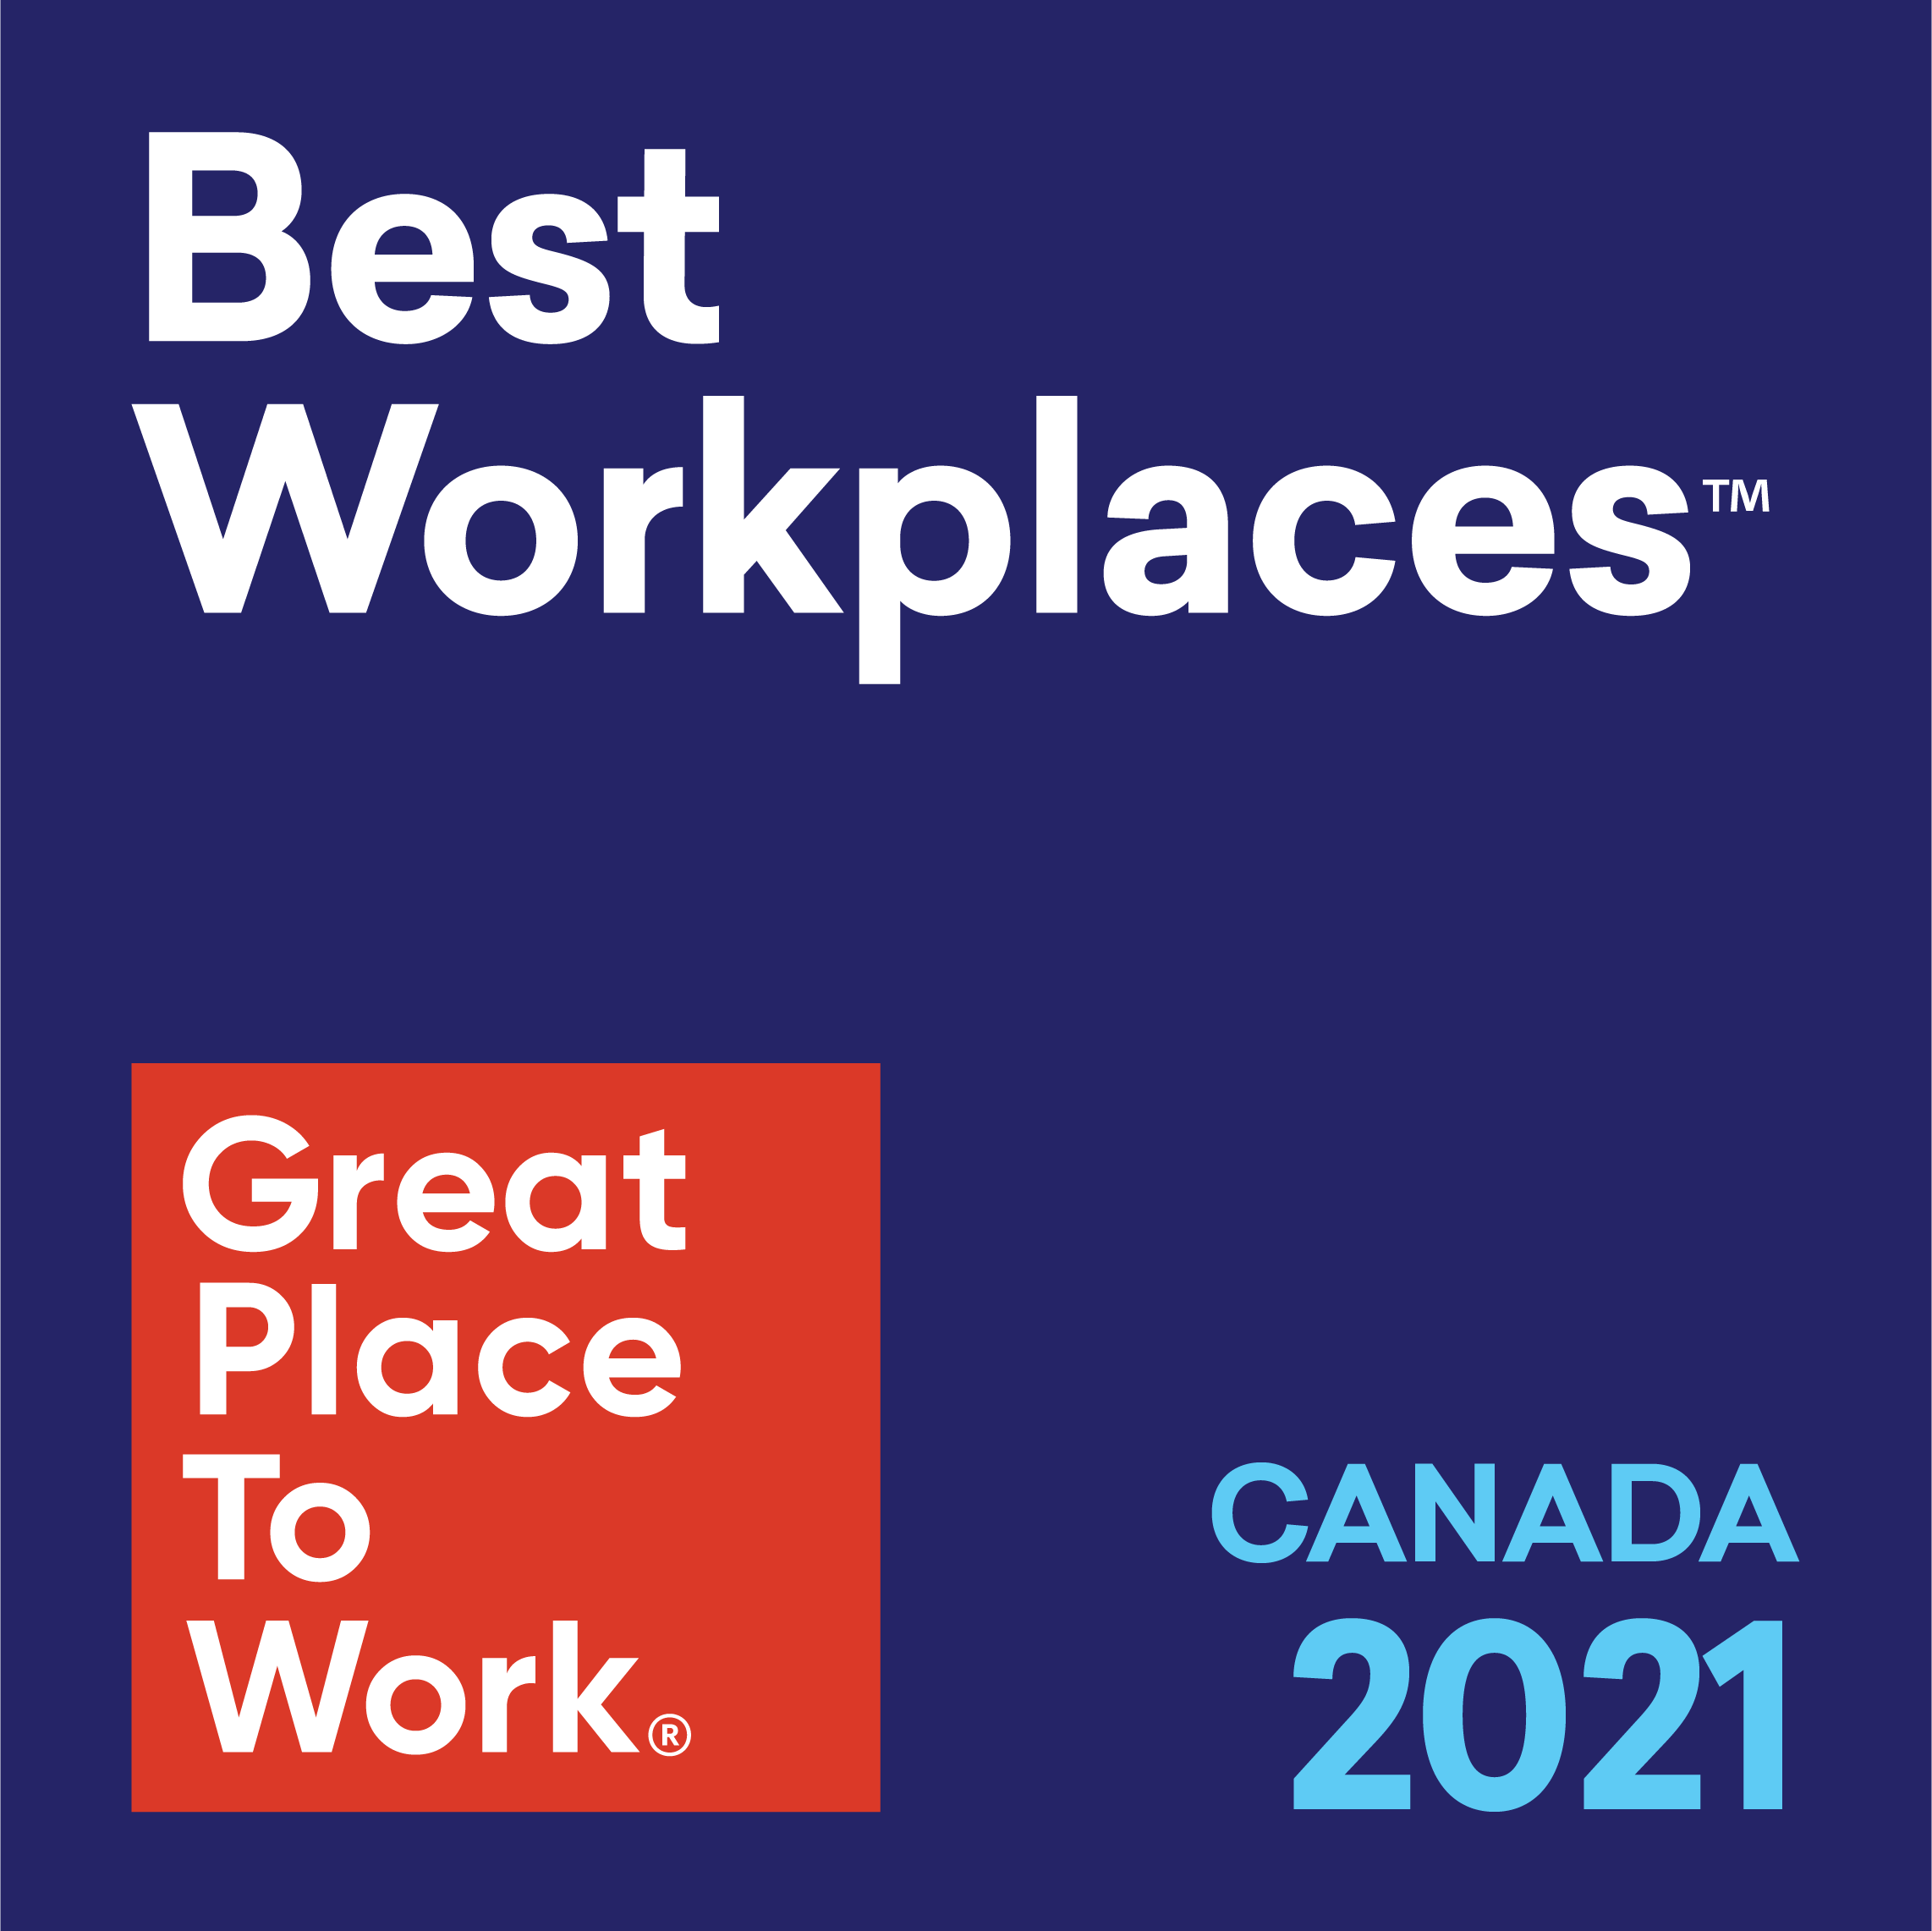 Best Workplaces, Great Place To Work, Canada 2021